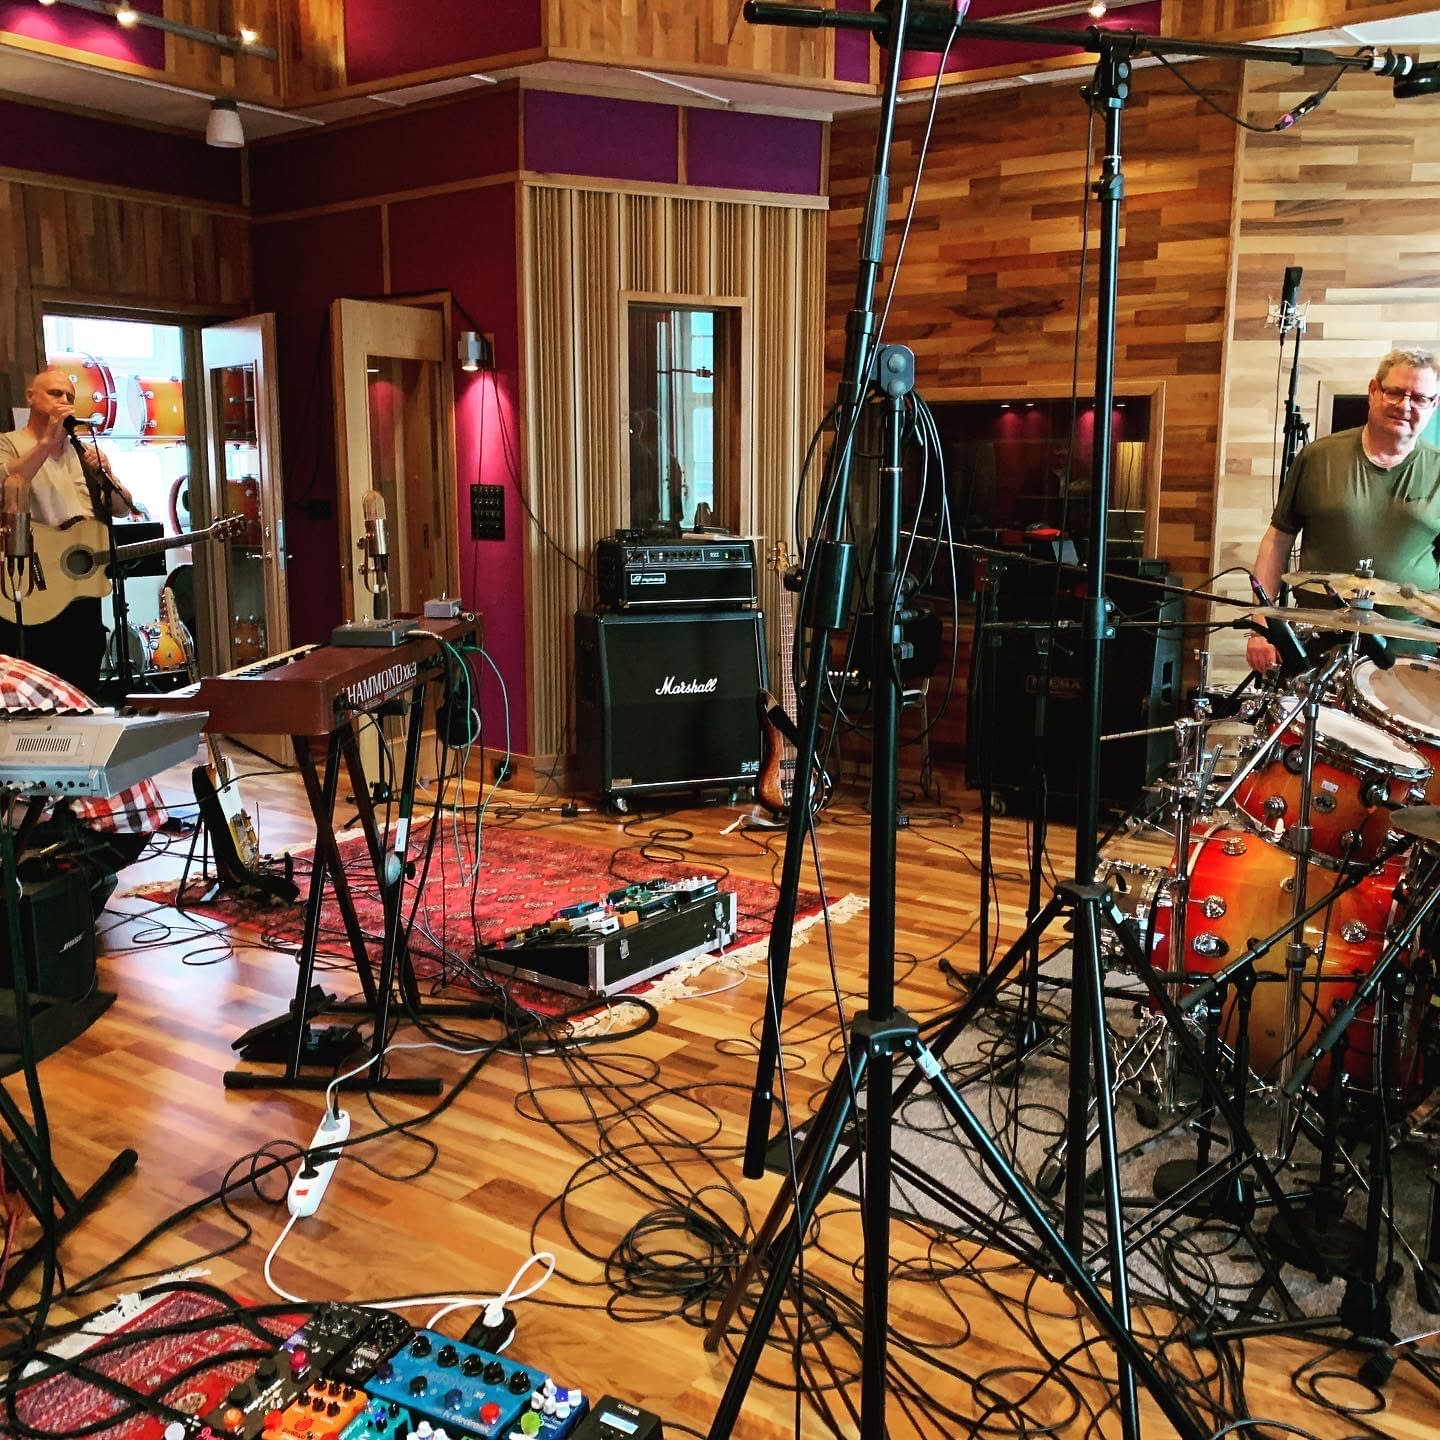 Wide view of the recording studio